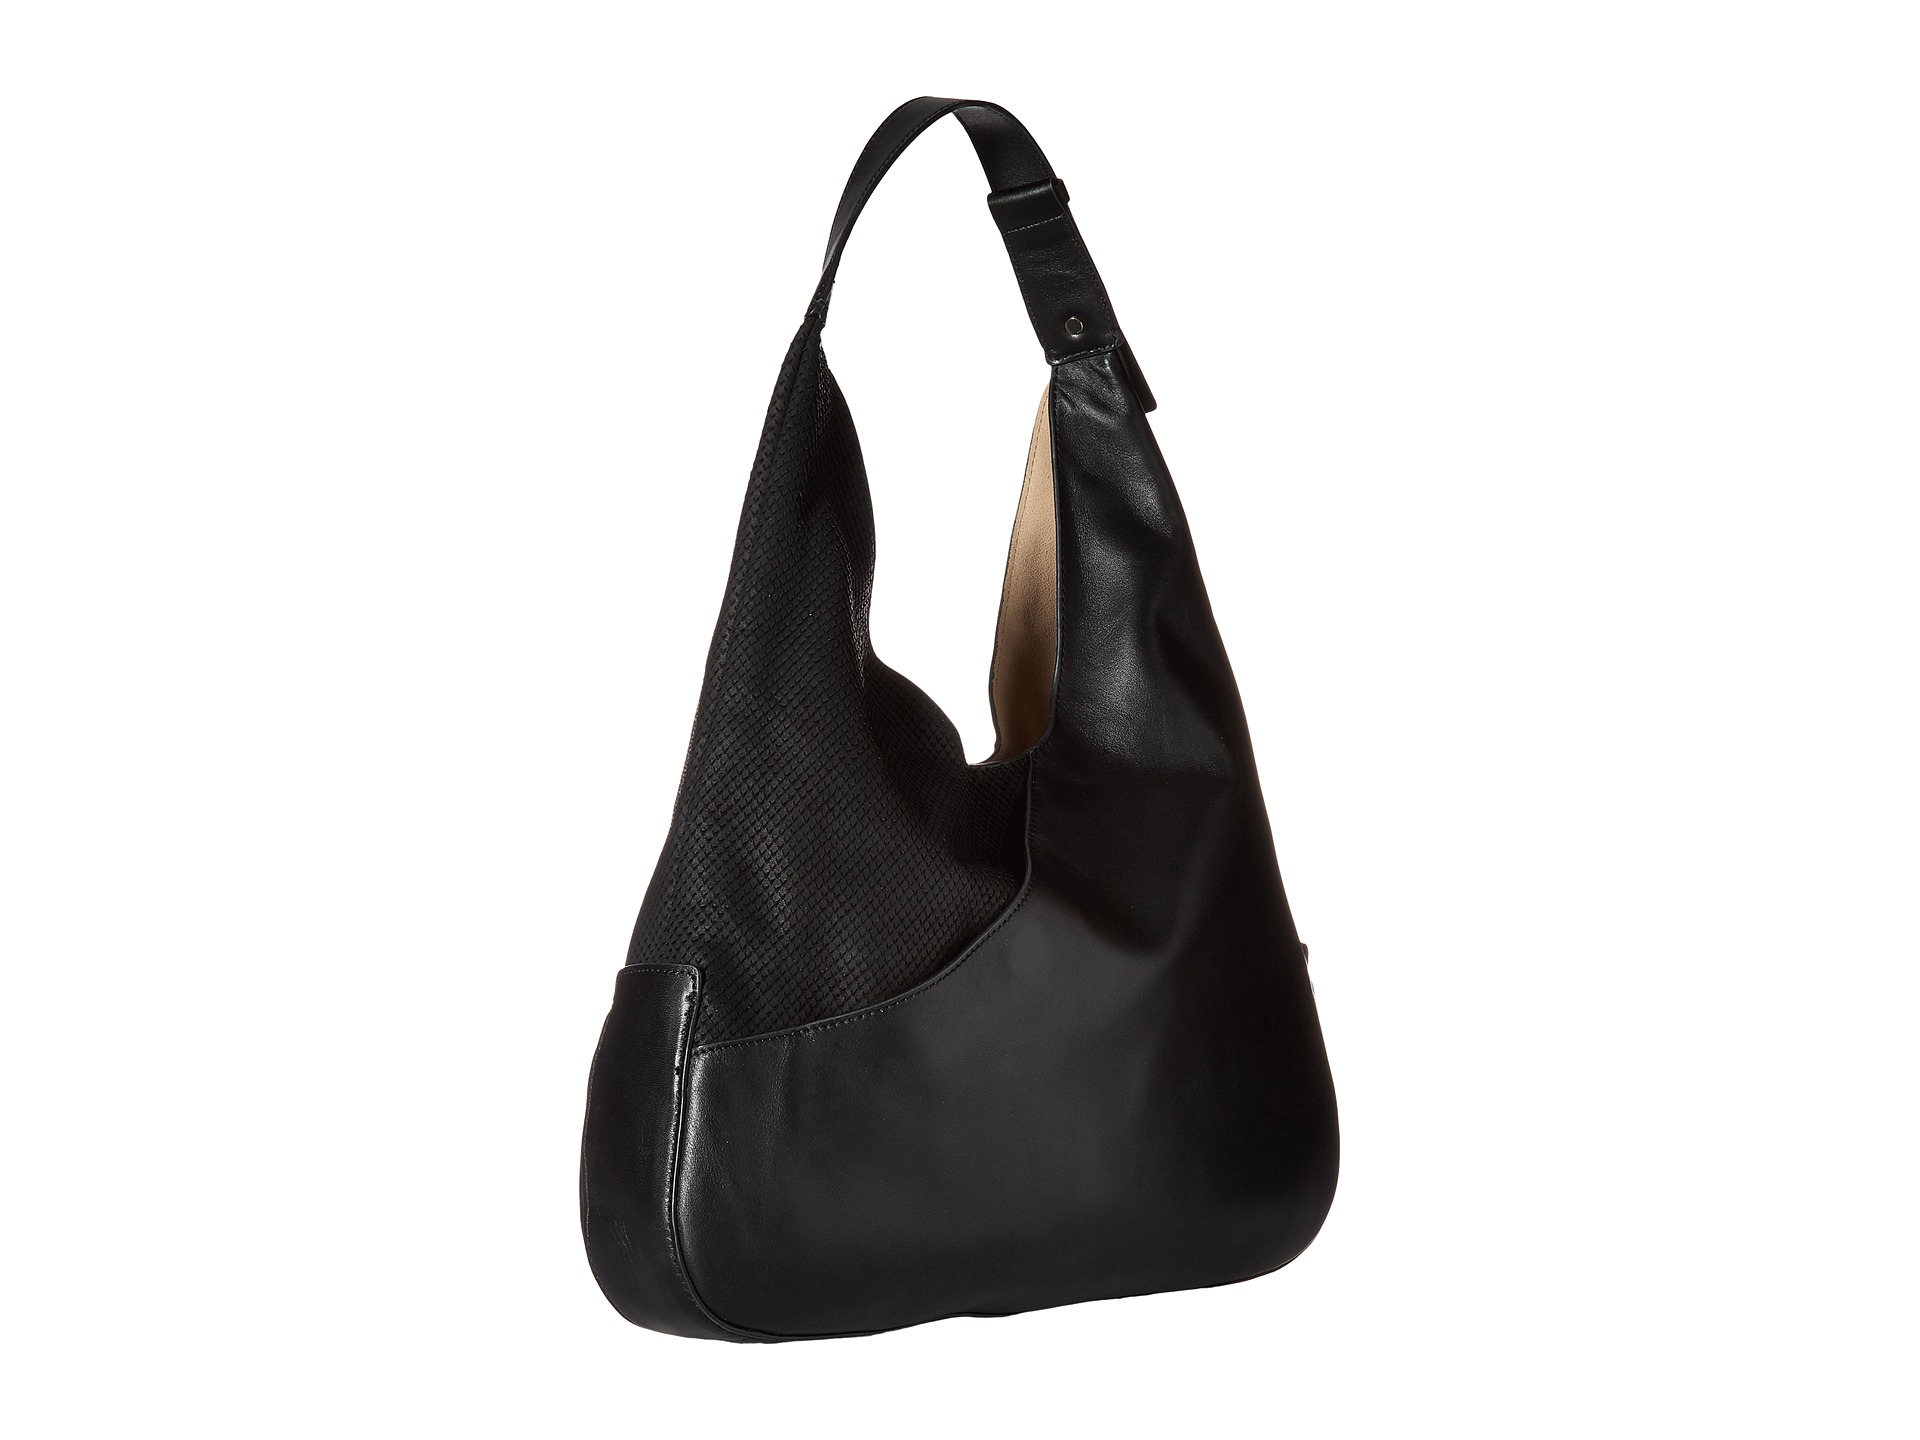 Louise et Cie Sonye Crossover Hobo at Zappos.com